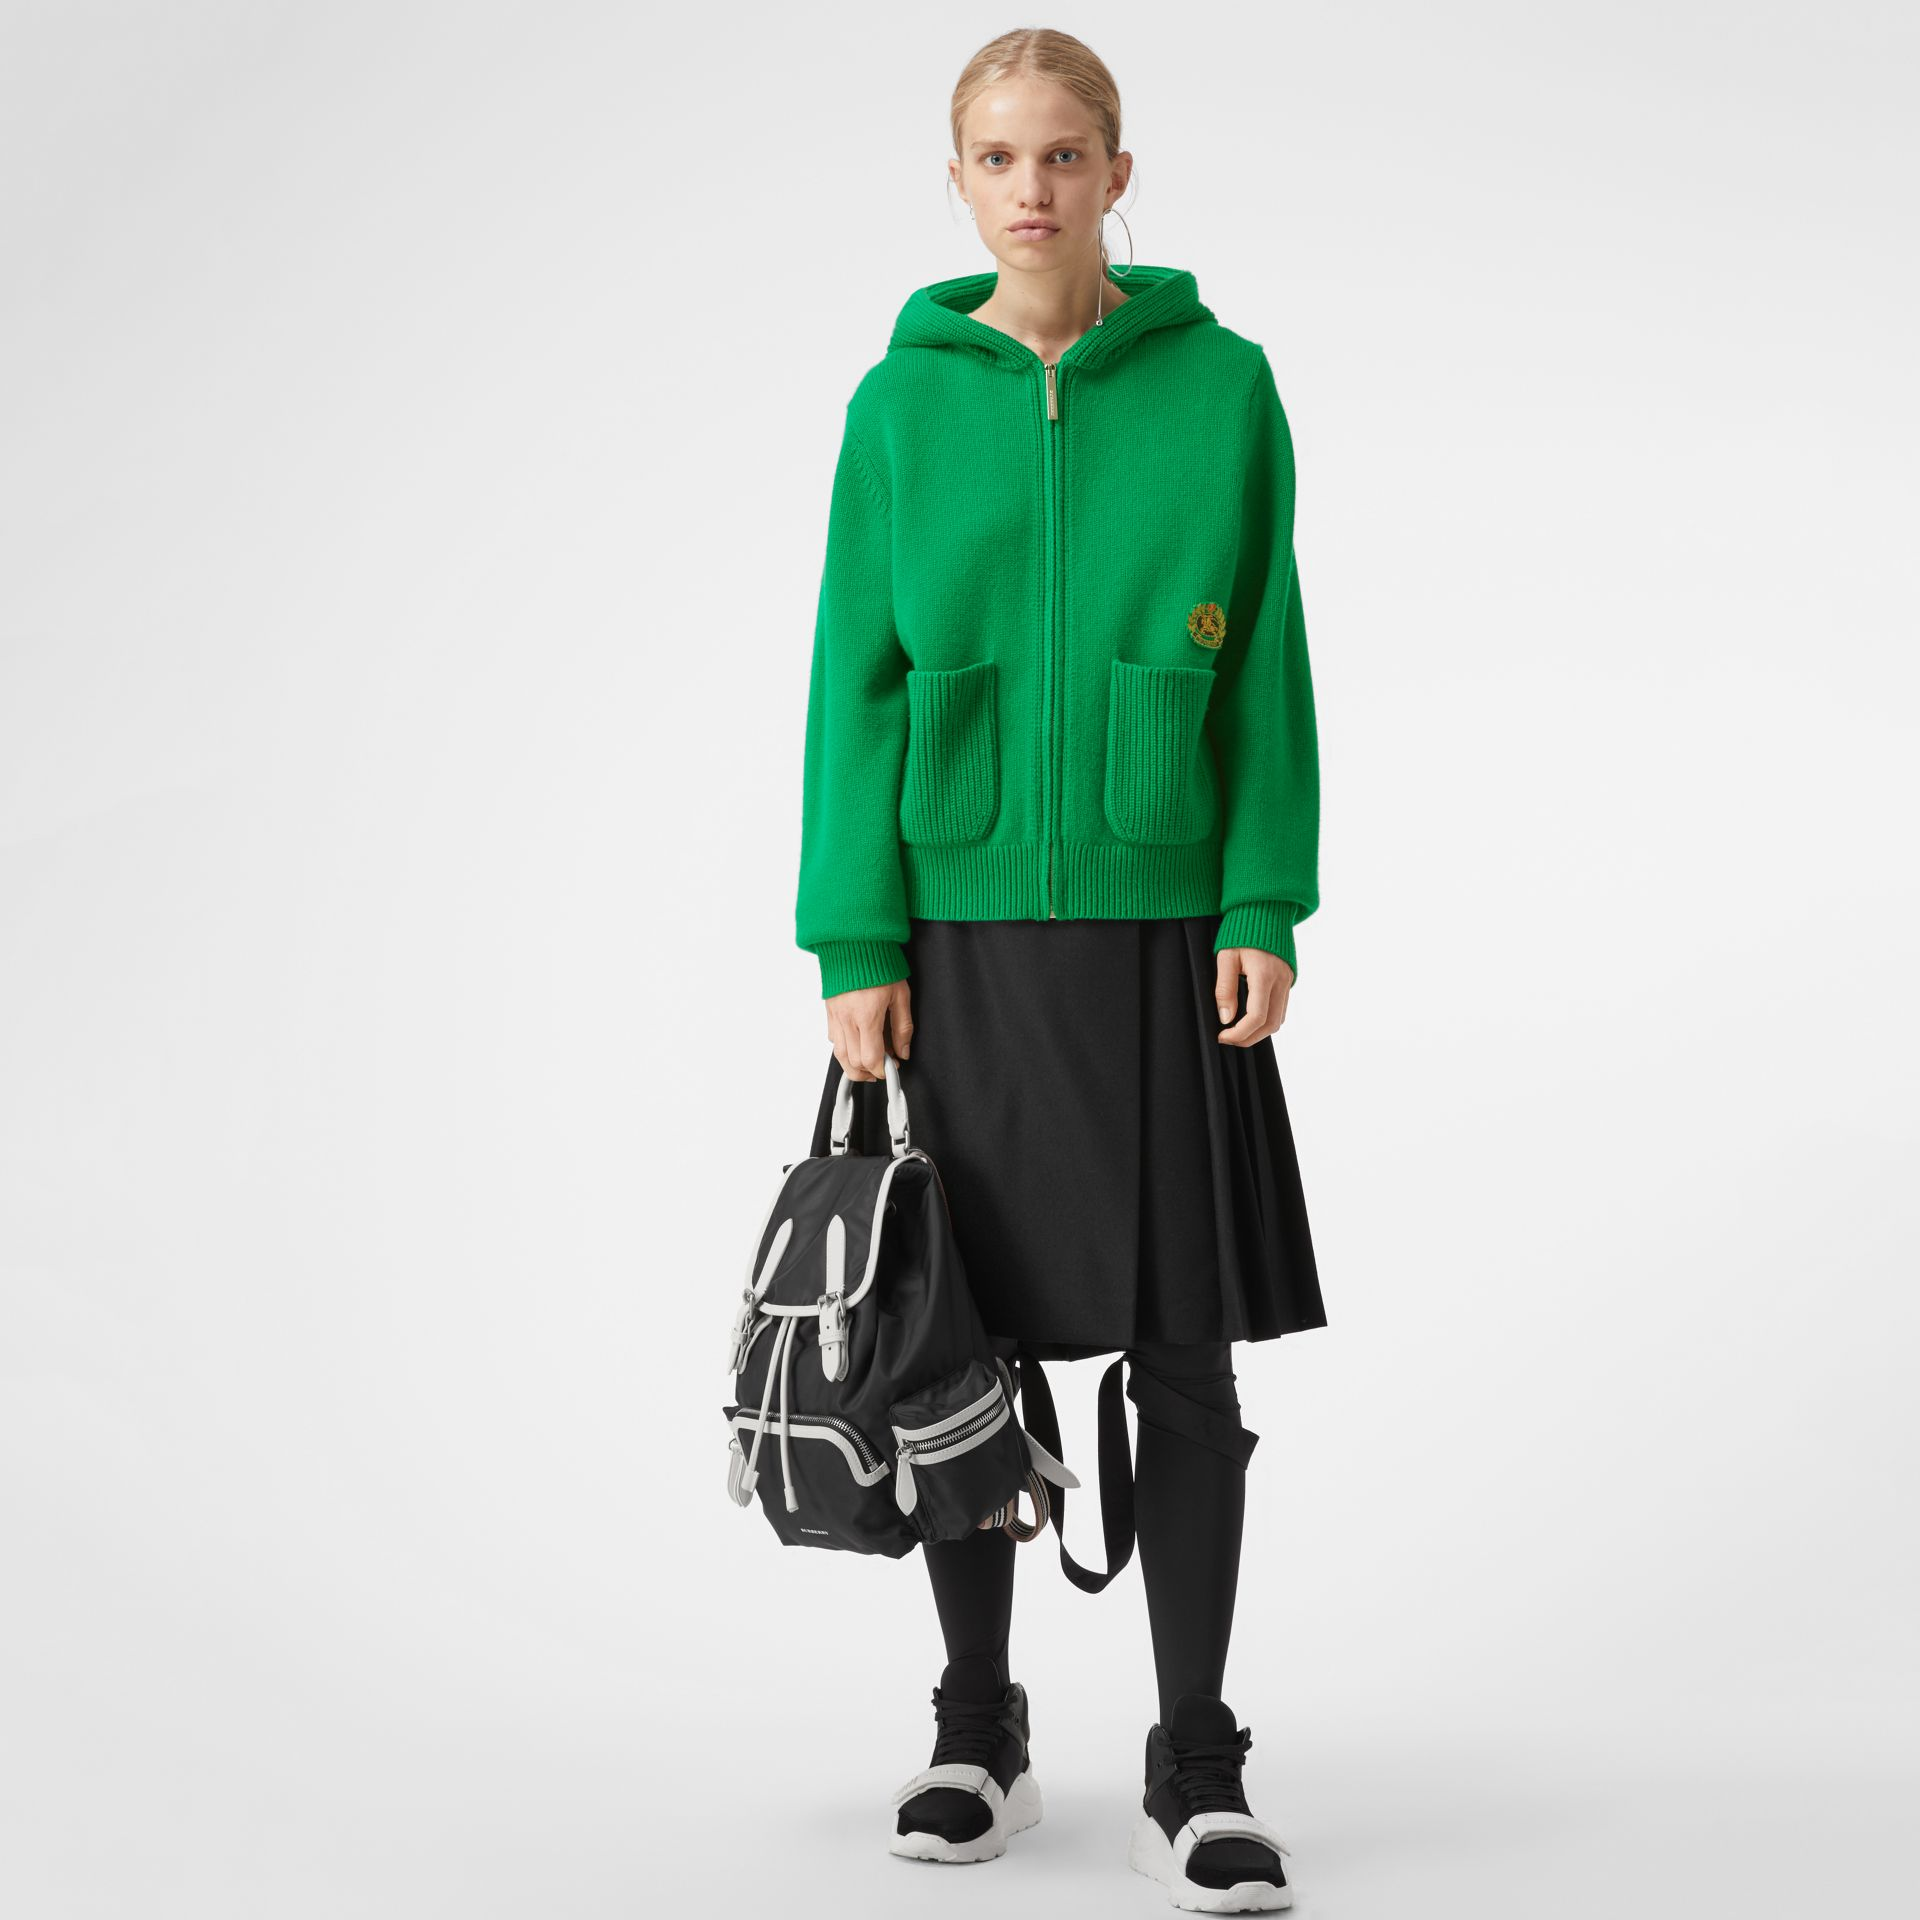 Embroidered Archive Logo Cashmere Hooded Top in Vibrant Green - Women | Burberry - gallery image 0